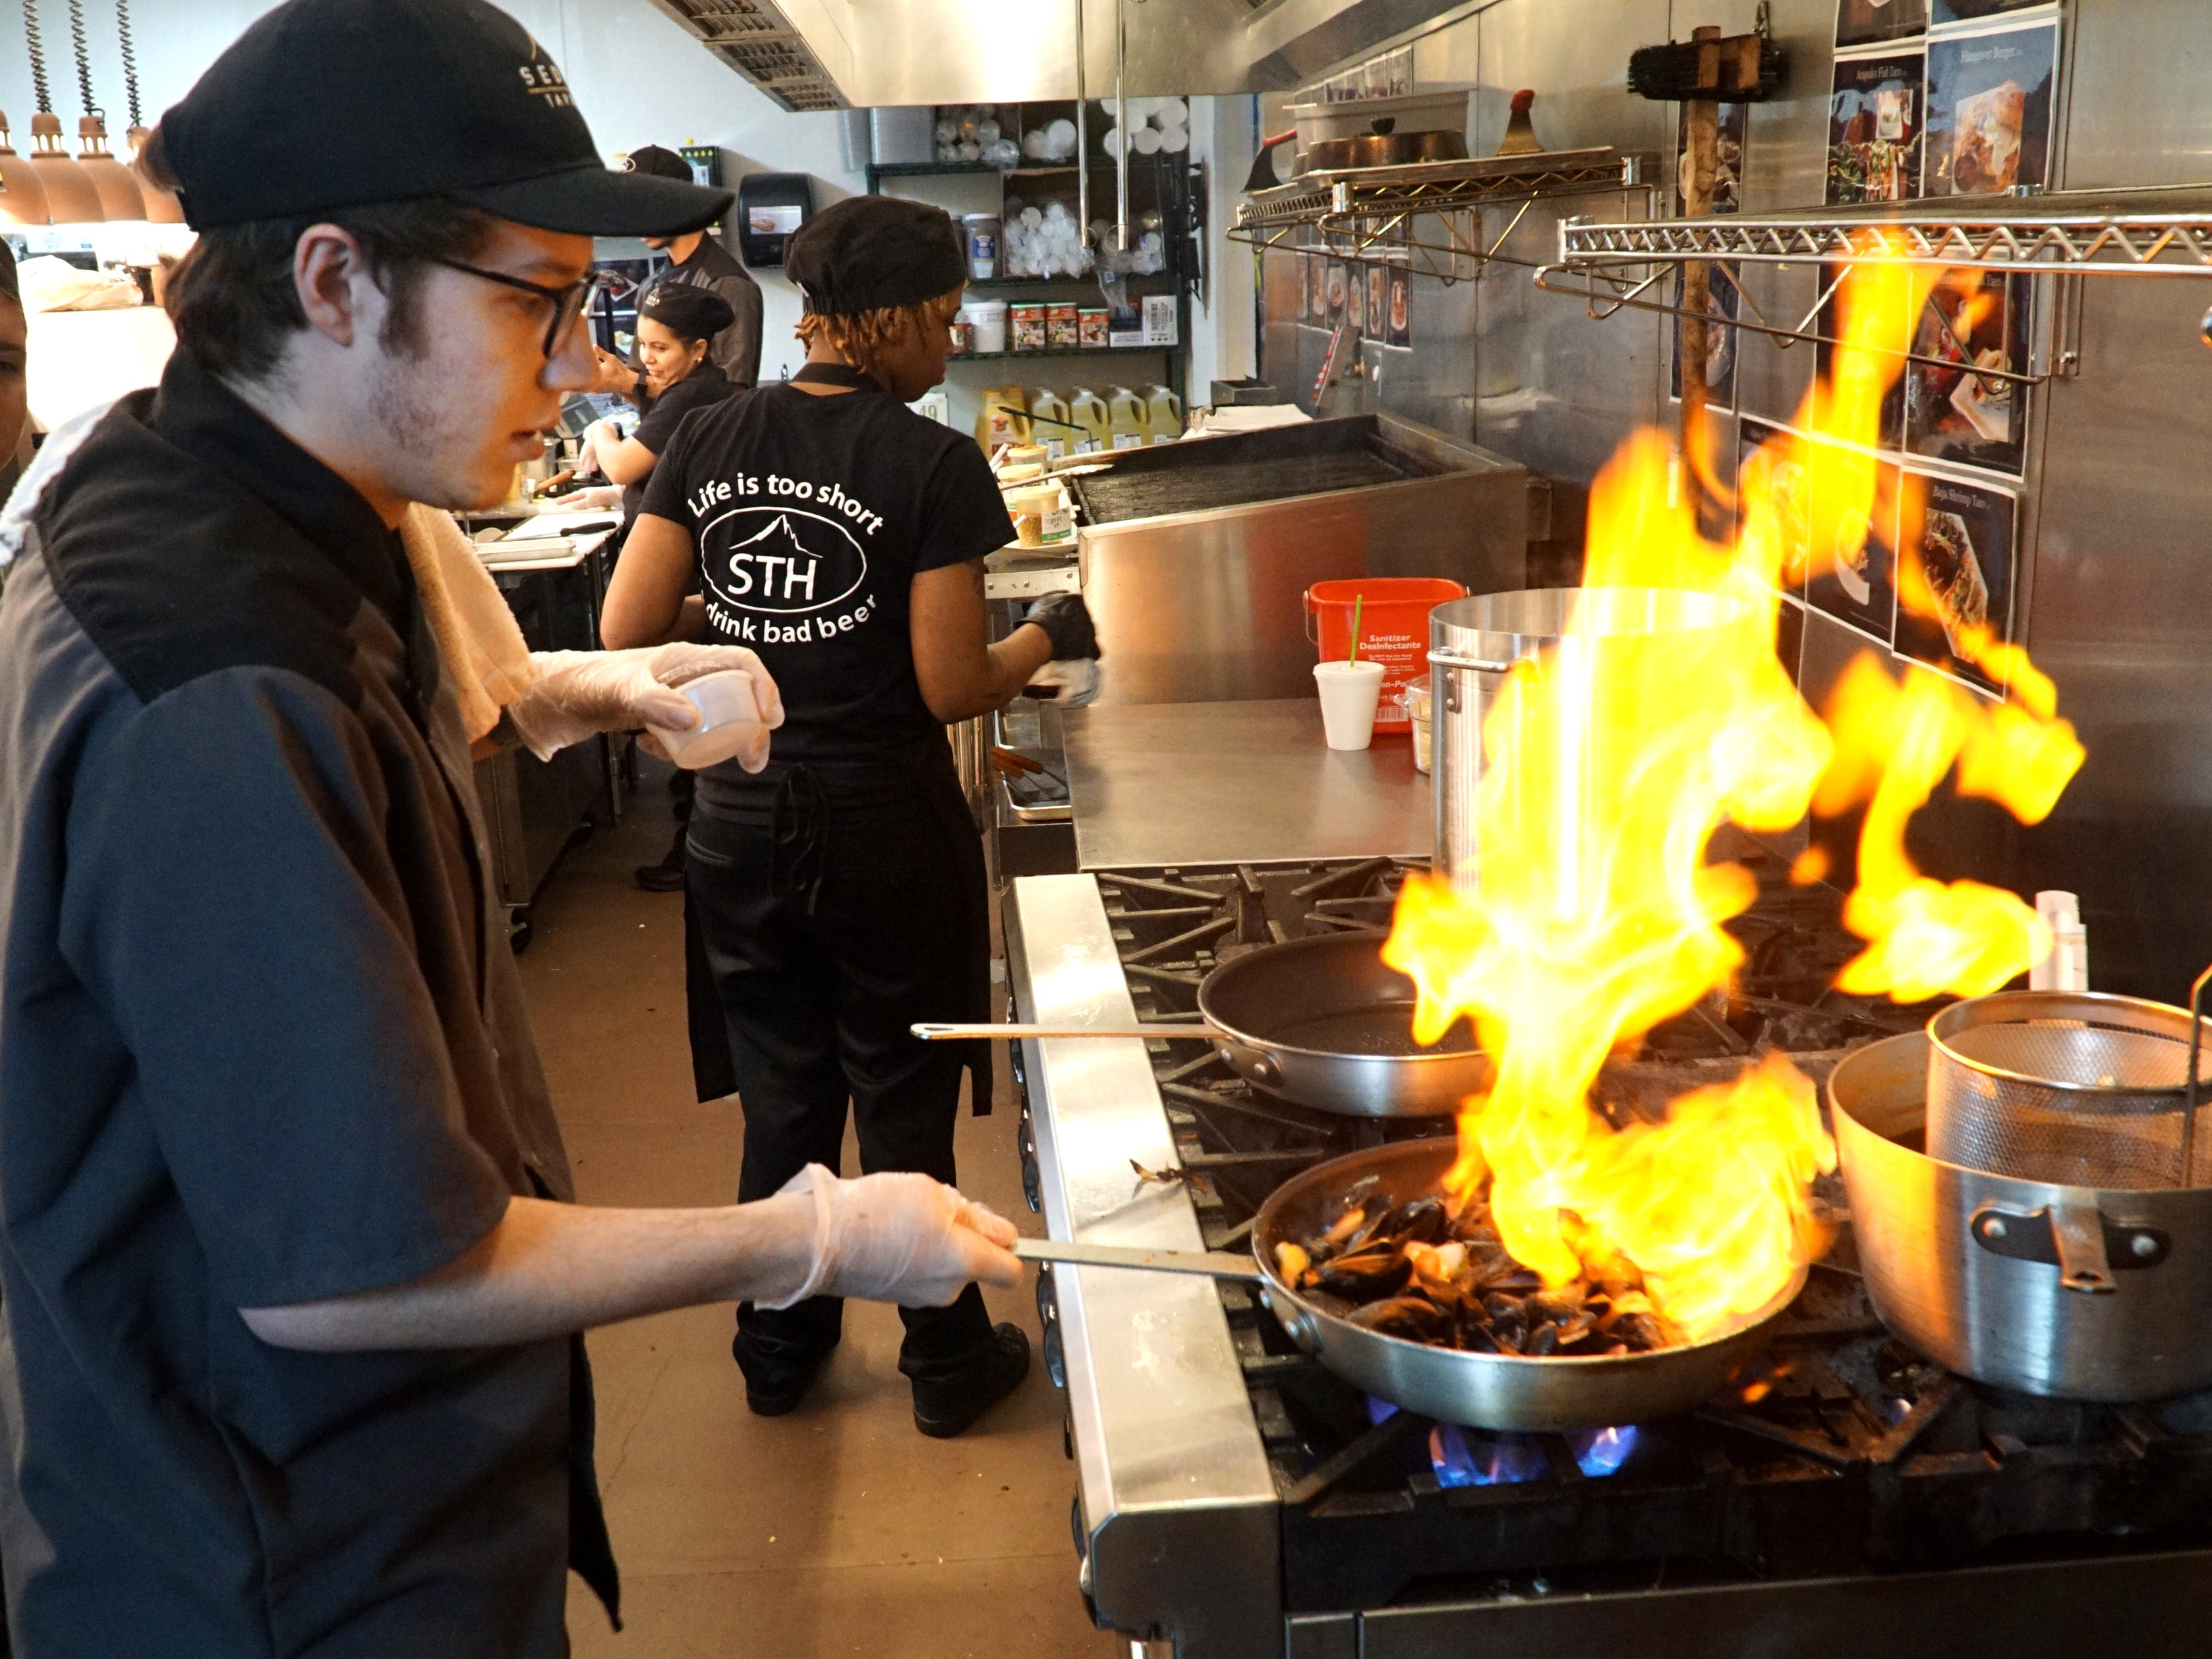 A dash of liqueur goes up in flames as trainer of Sedona Taphouse chefs Tyler Barbaro whips up a sautee pan of Prince Edward Island mussels on April 29 - as the Twelve Oaks Mall restaurant gets ready for its opening night.